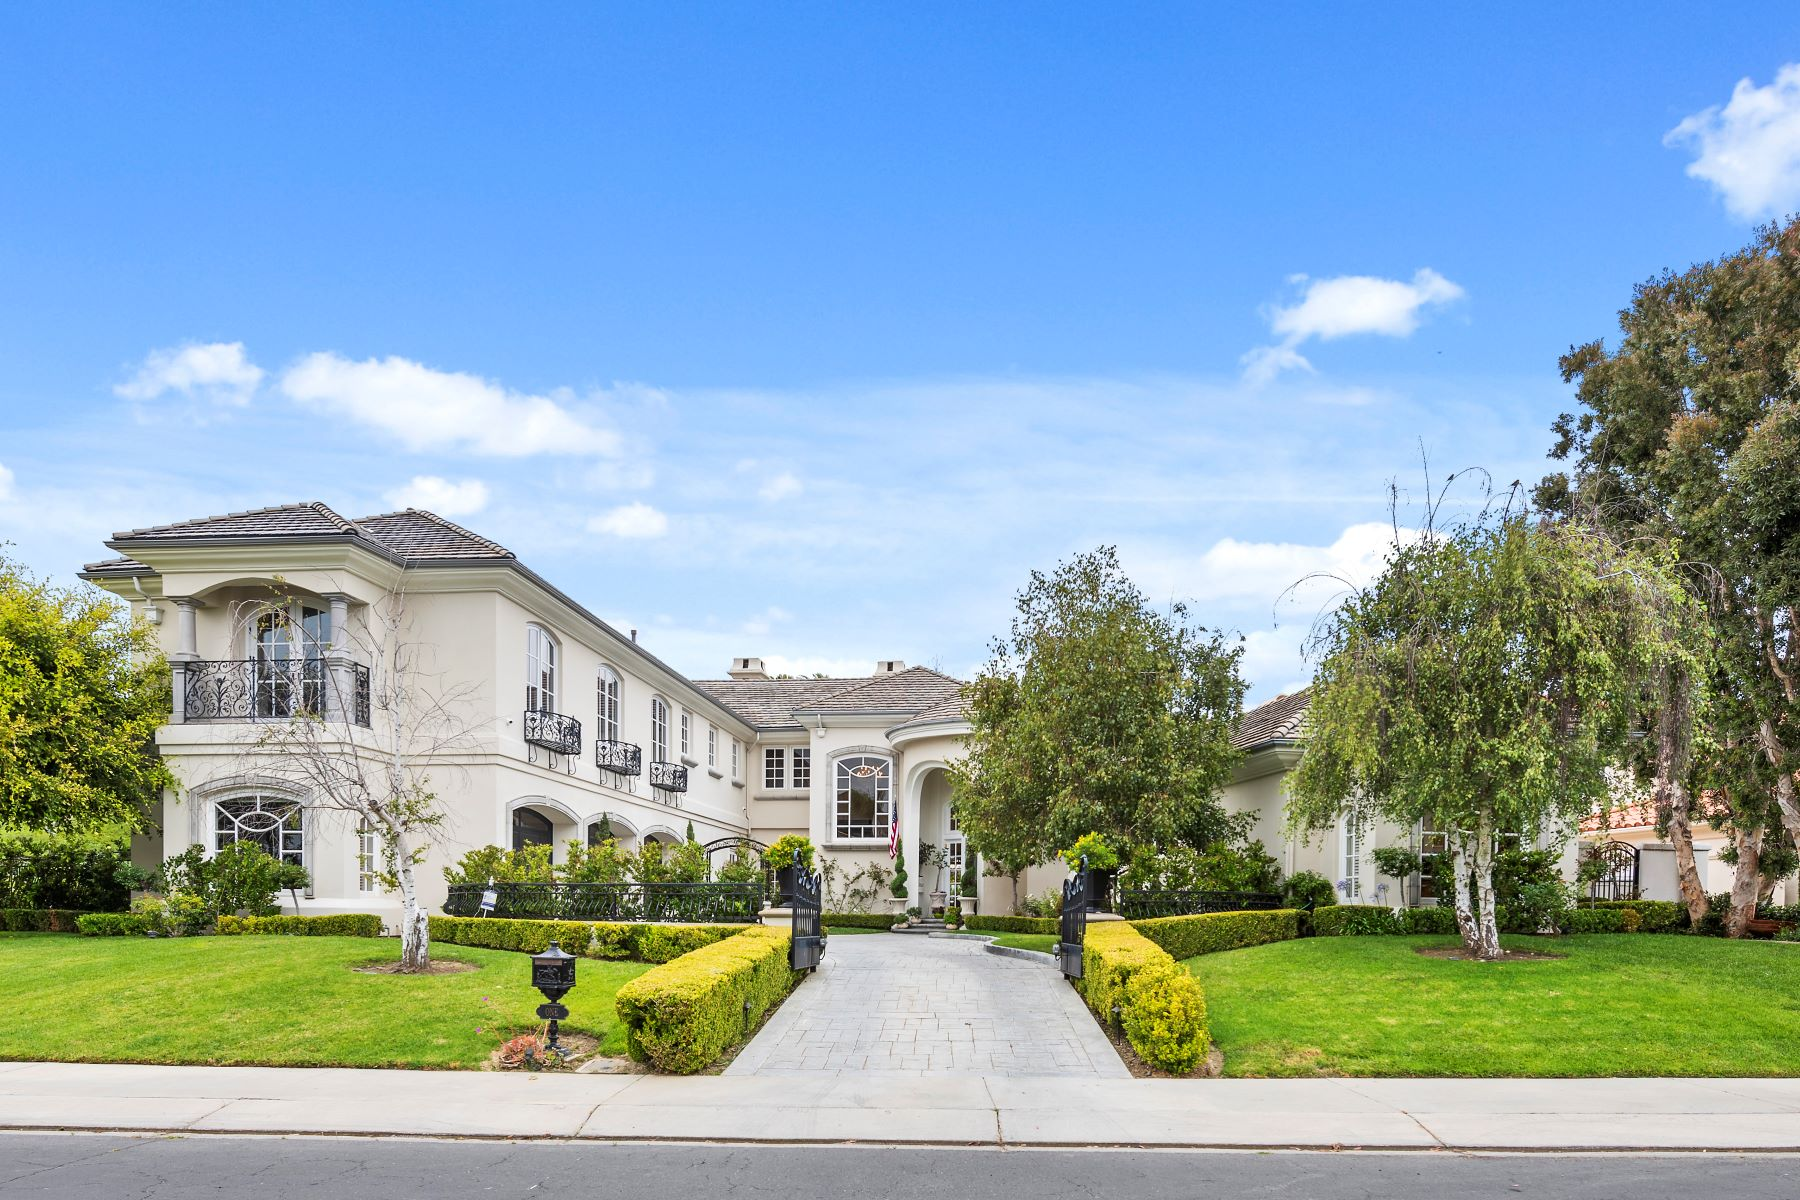 Single Family Homes for Active at Classic French Chateau 1 Marsh Creek Laguna Niguel, California 92677 United States